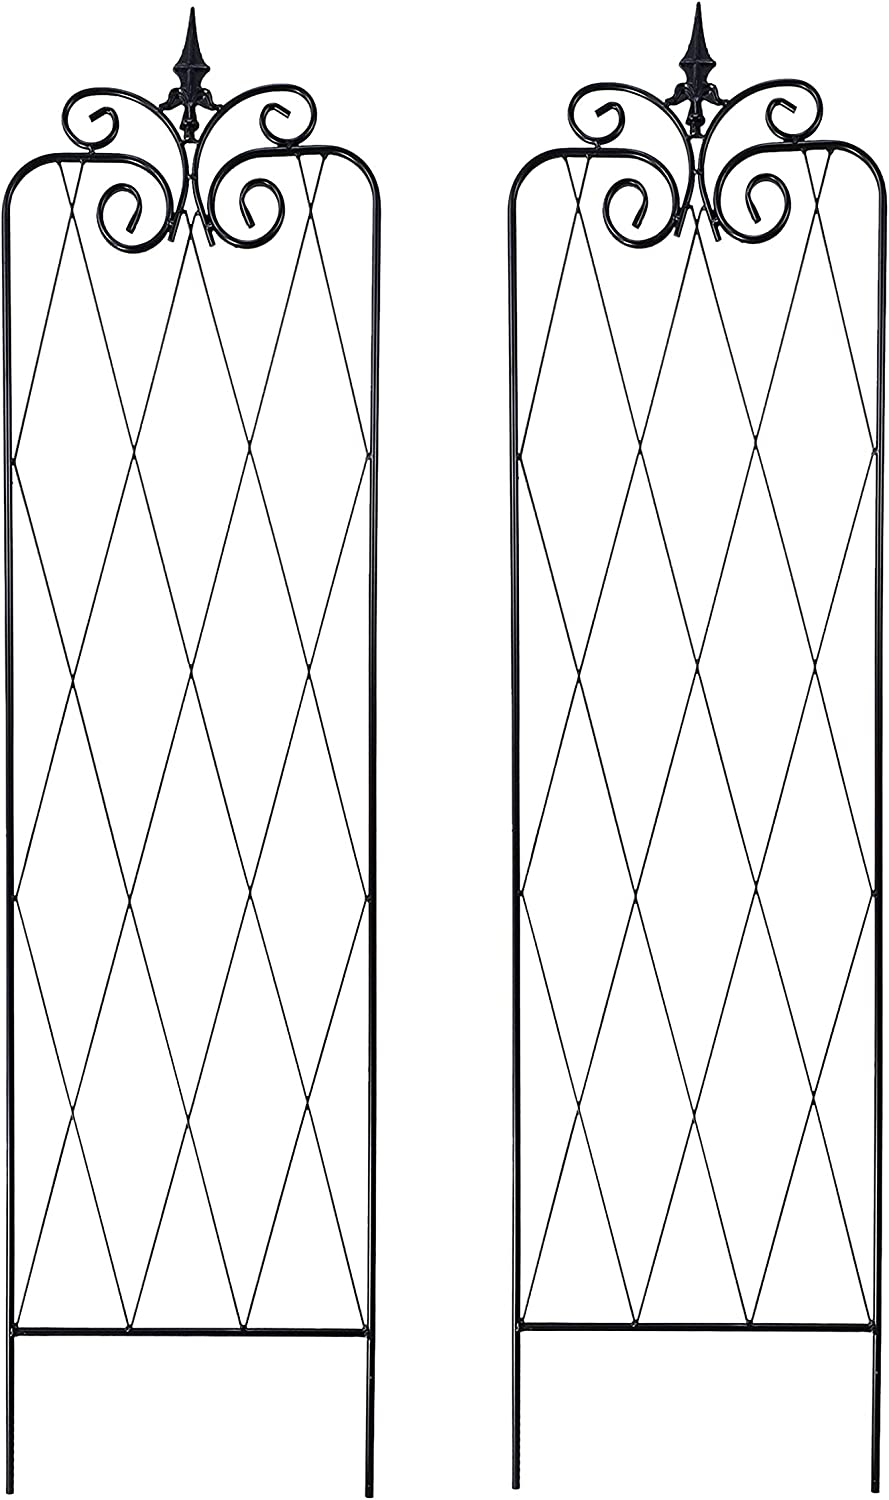 OUTOUR Metal Garden 59 Lx15W Inches Trellis 2 Pack Wire Lattice Grid Panels for Rose Vines, Climbing Plants, Flower, Vegetables, Clematis Support, Outdoor Patio Lawn Yard Decoration